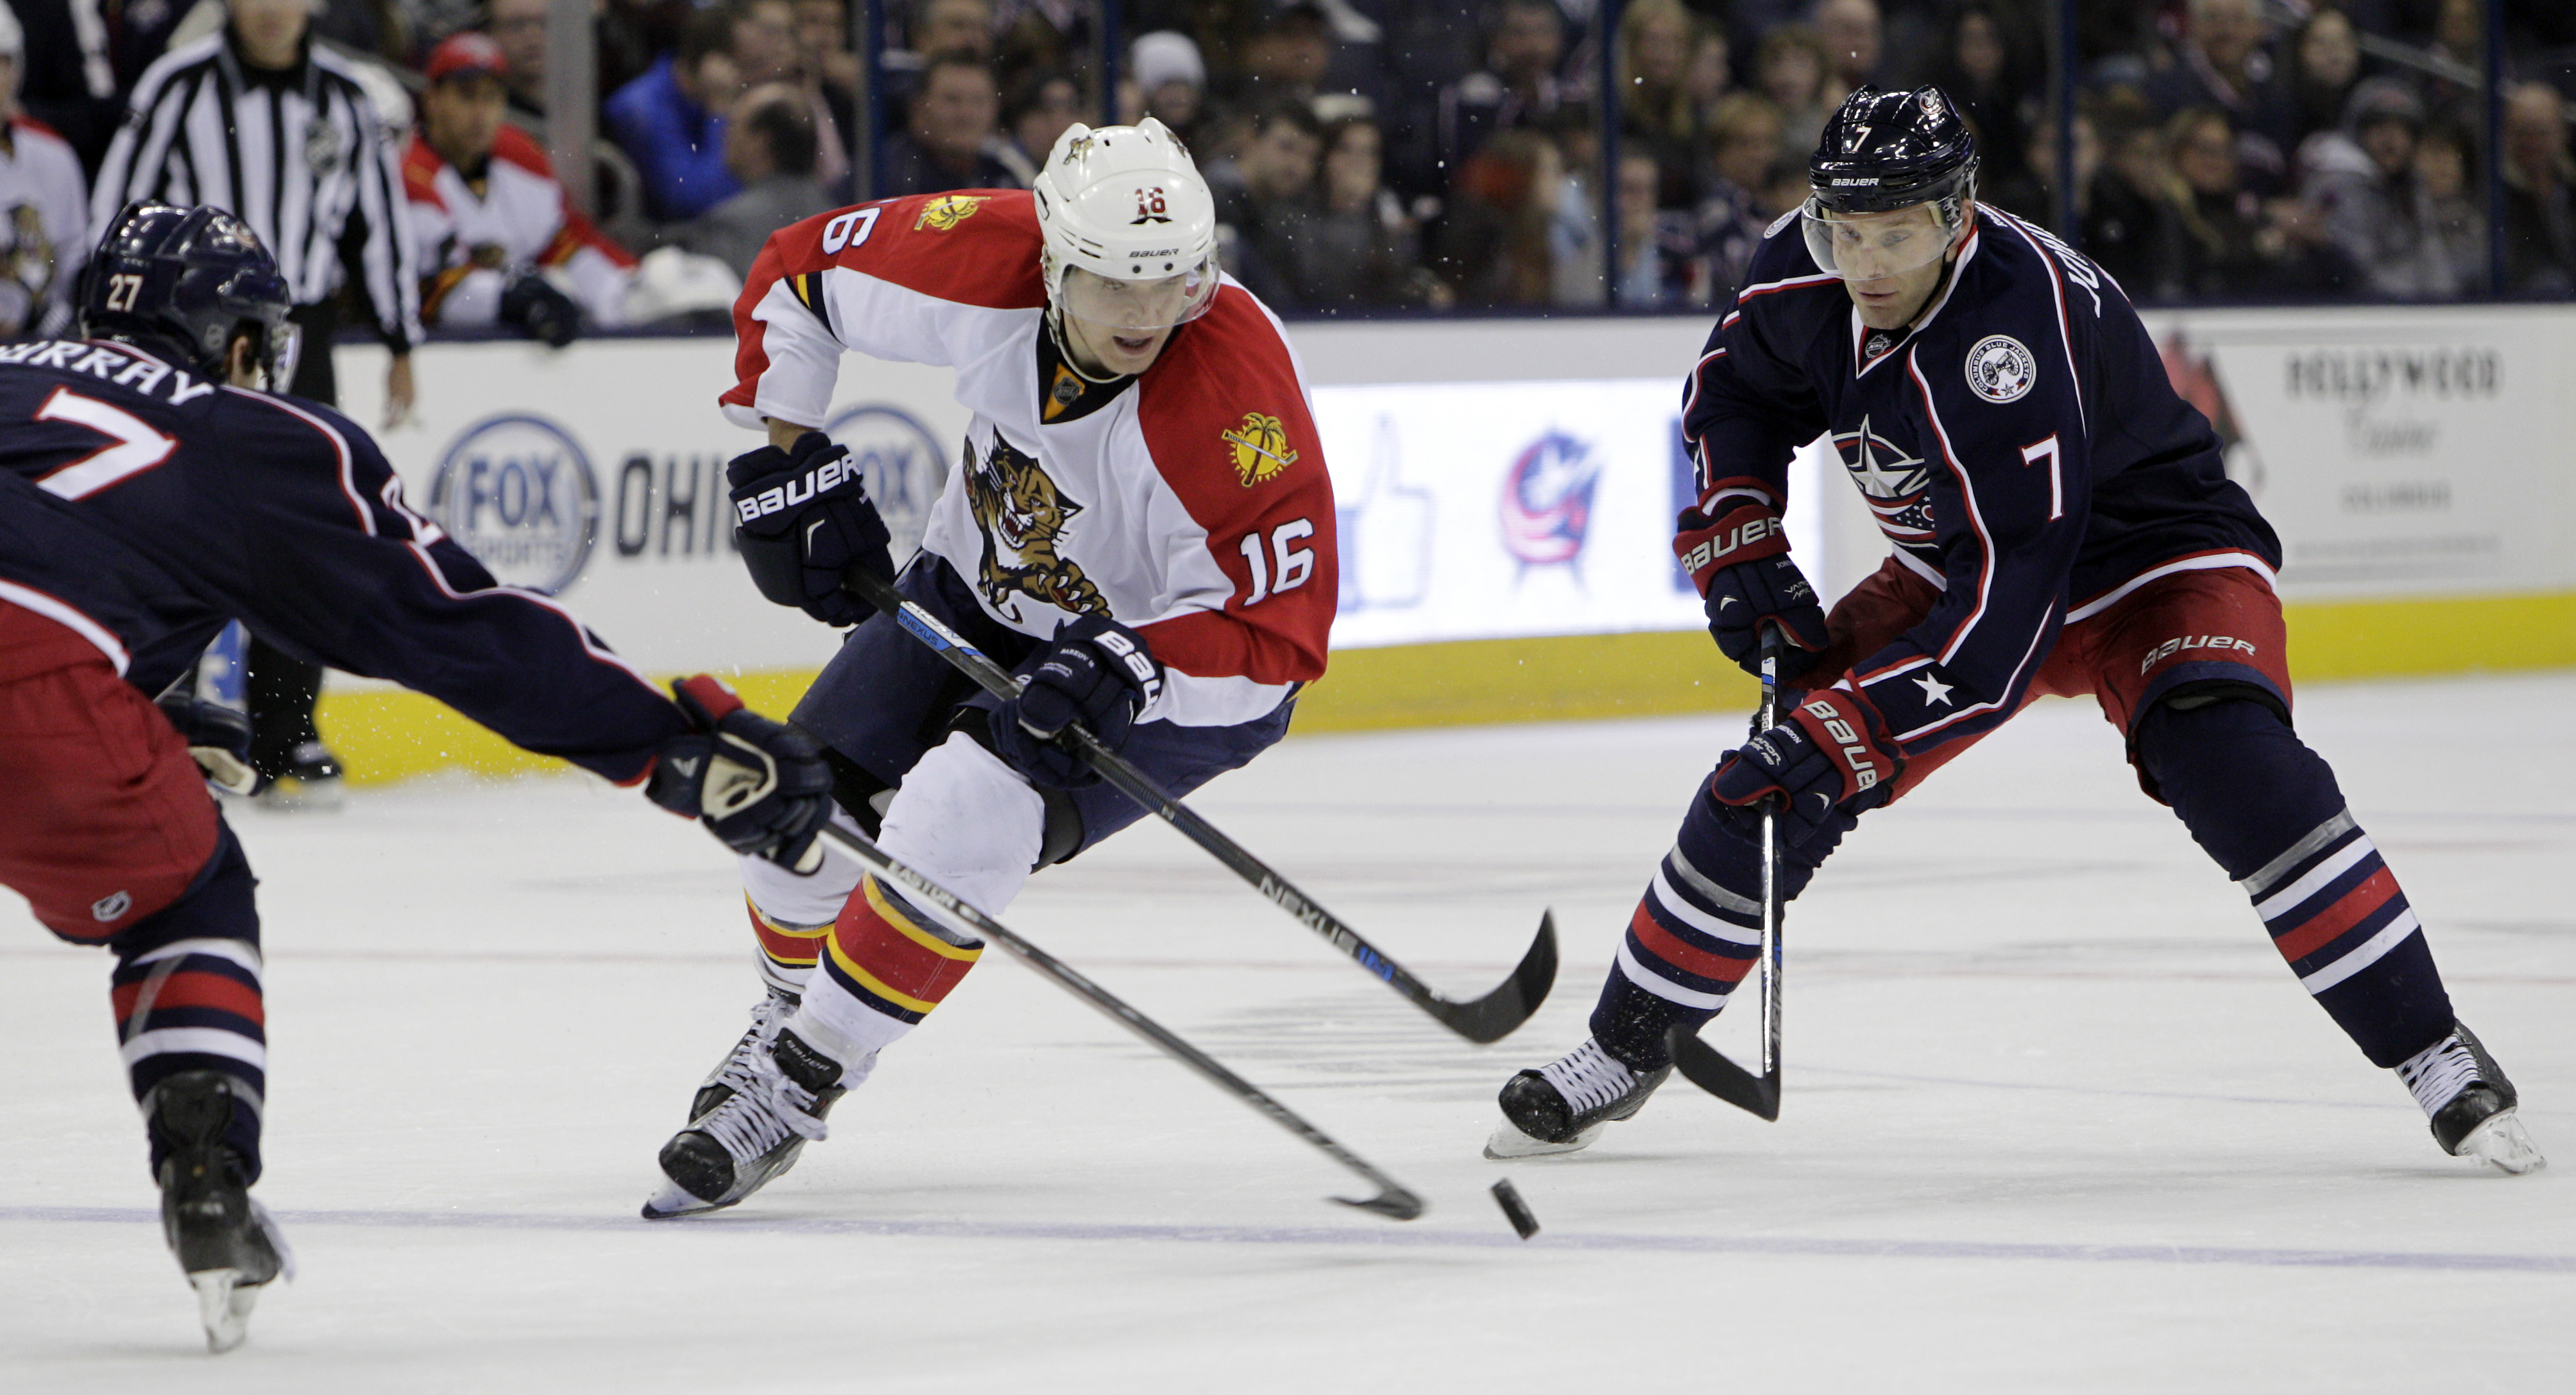 Florida Panthers' Aleksander Barkov, center, of Finland, carries the puck between Columbus Blue Jackets' Ryan Murray, left, and Jack Johnson during the third period of an NHL hockey game Friday, Dec. 4, 2015, in Columbus, Ohio. The Panthers won 2-1 in a s